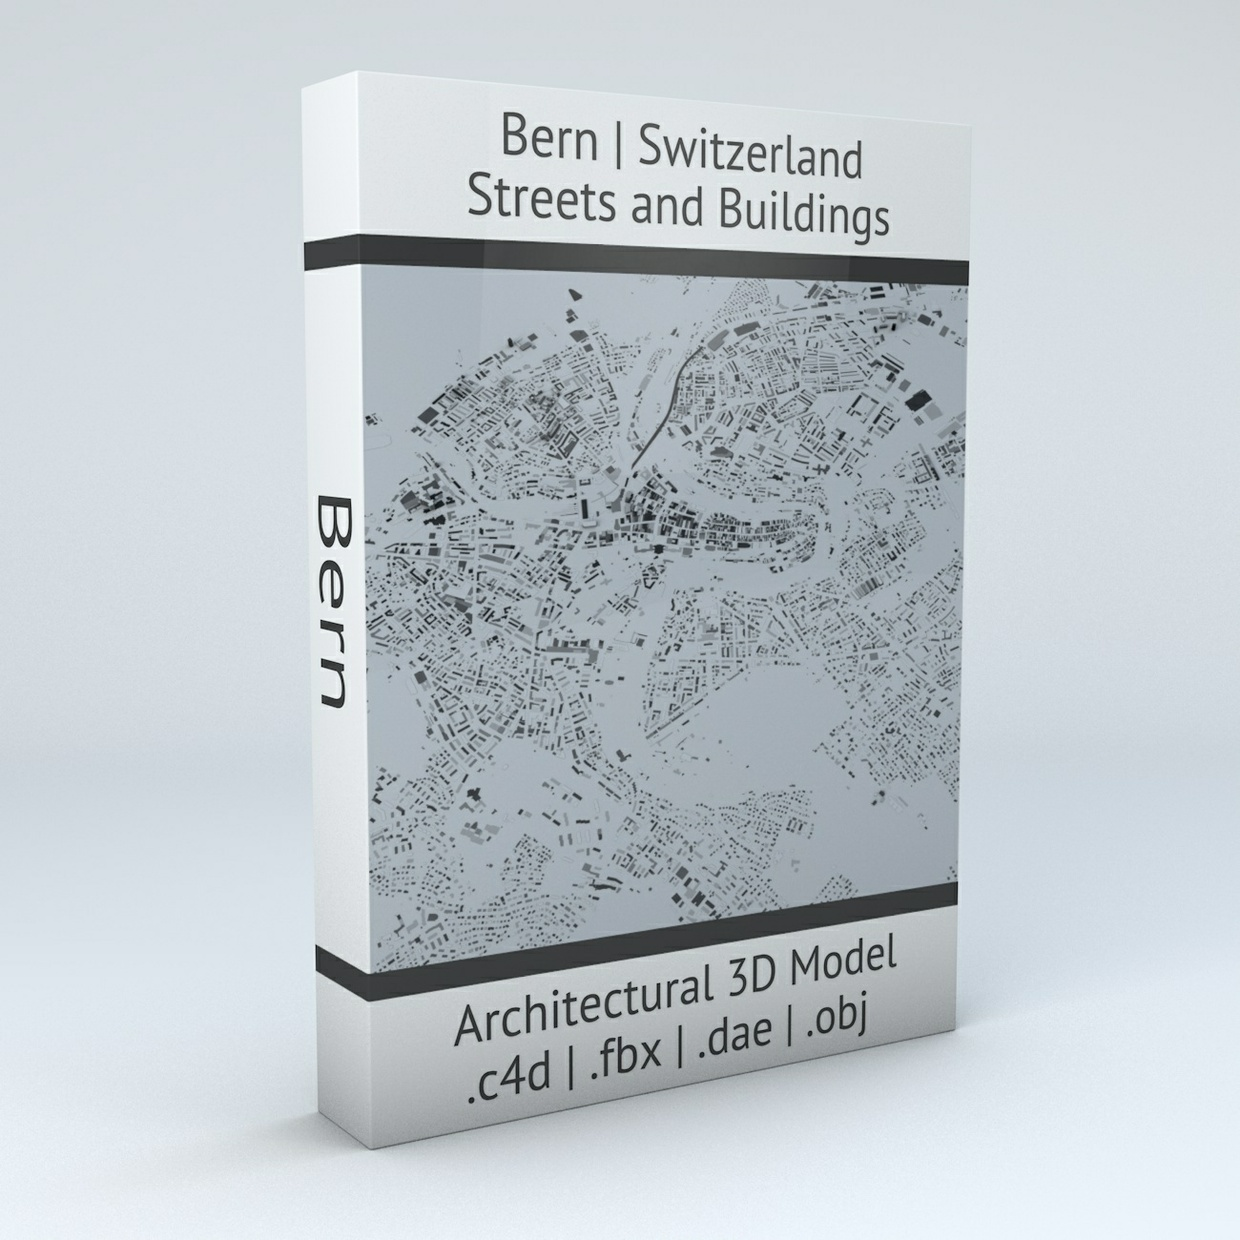 Bern Streets and Buildings Architectural 3D Model